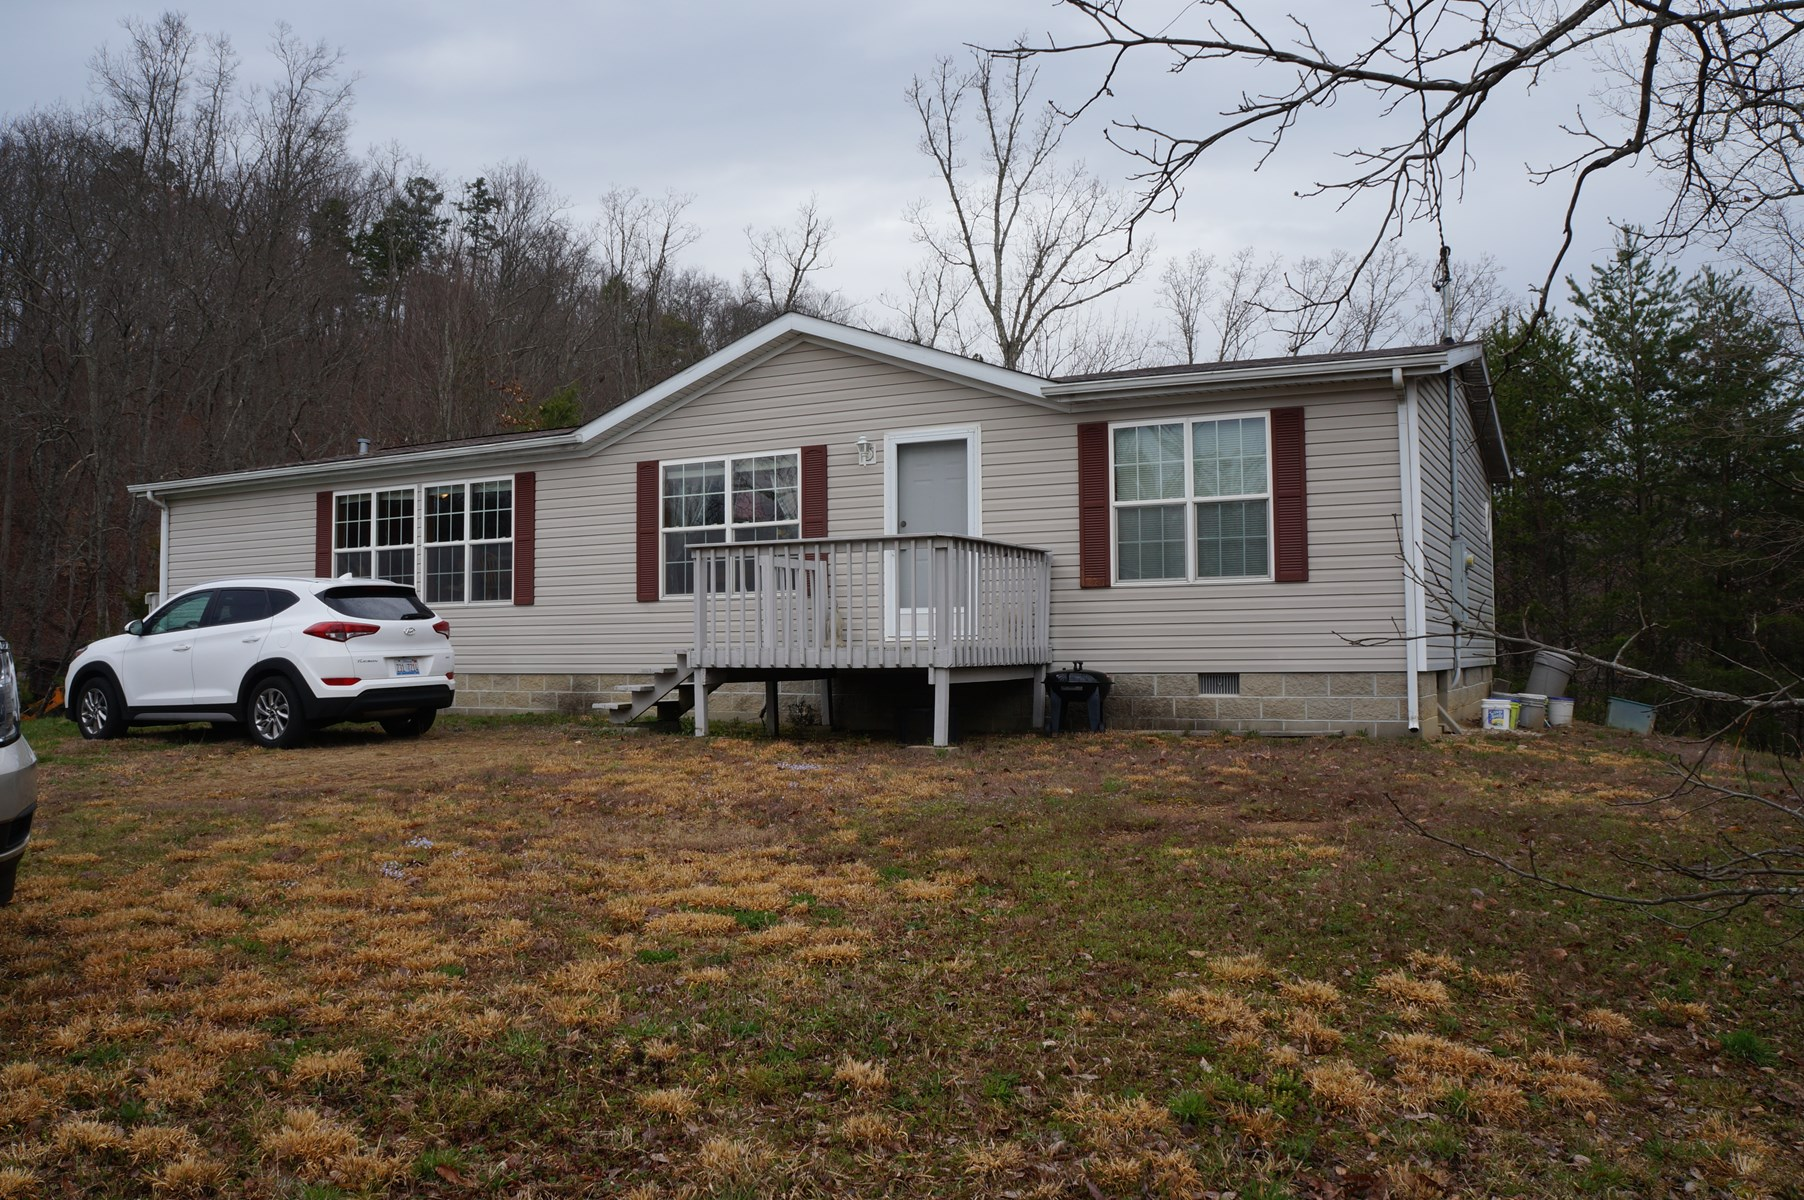 18.72 Wooded Acres With 3 BR, 2 BA Home in East TN